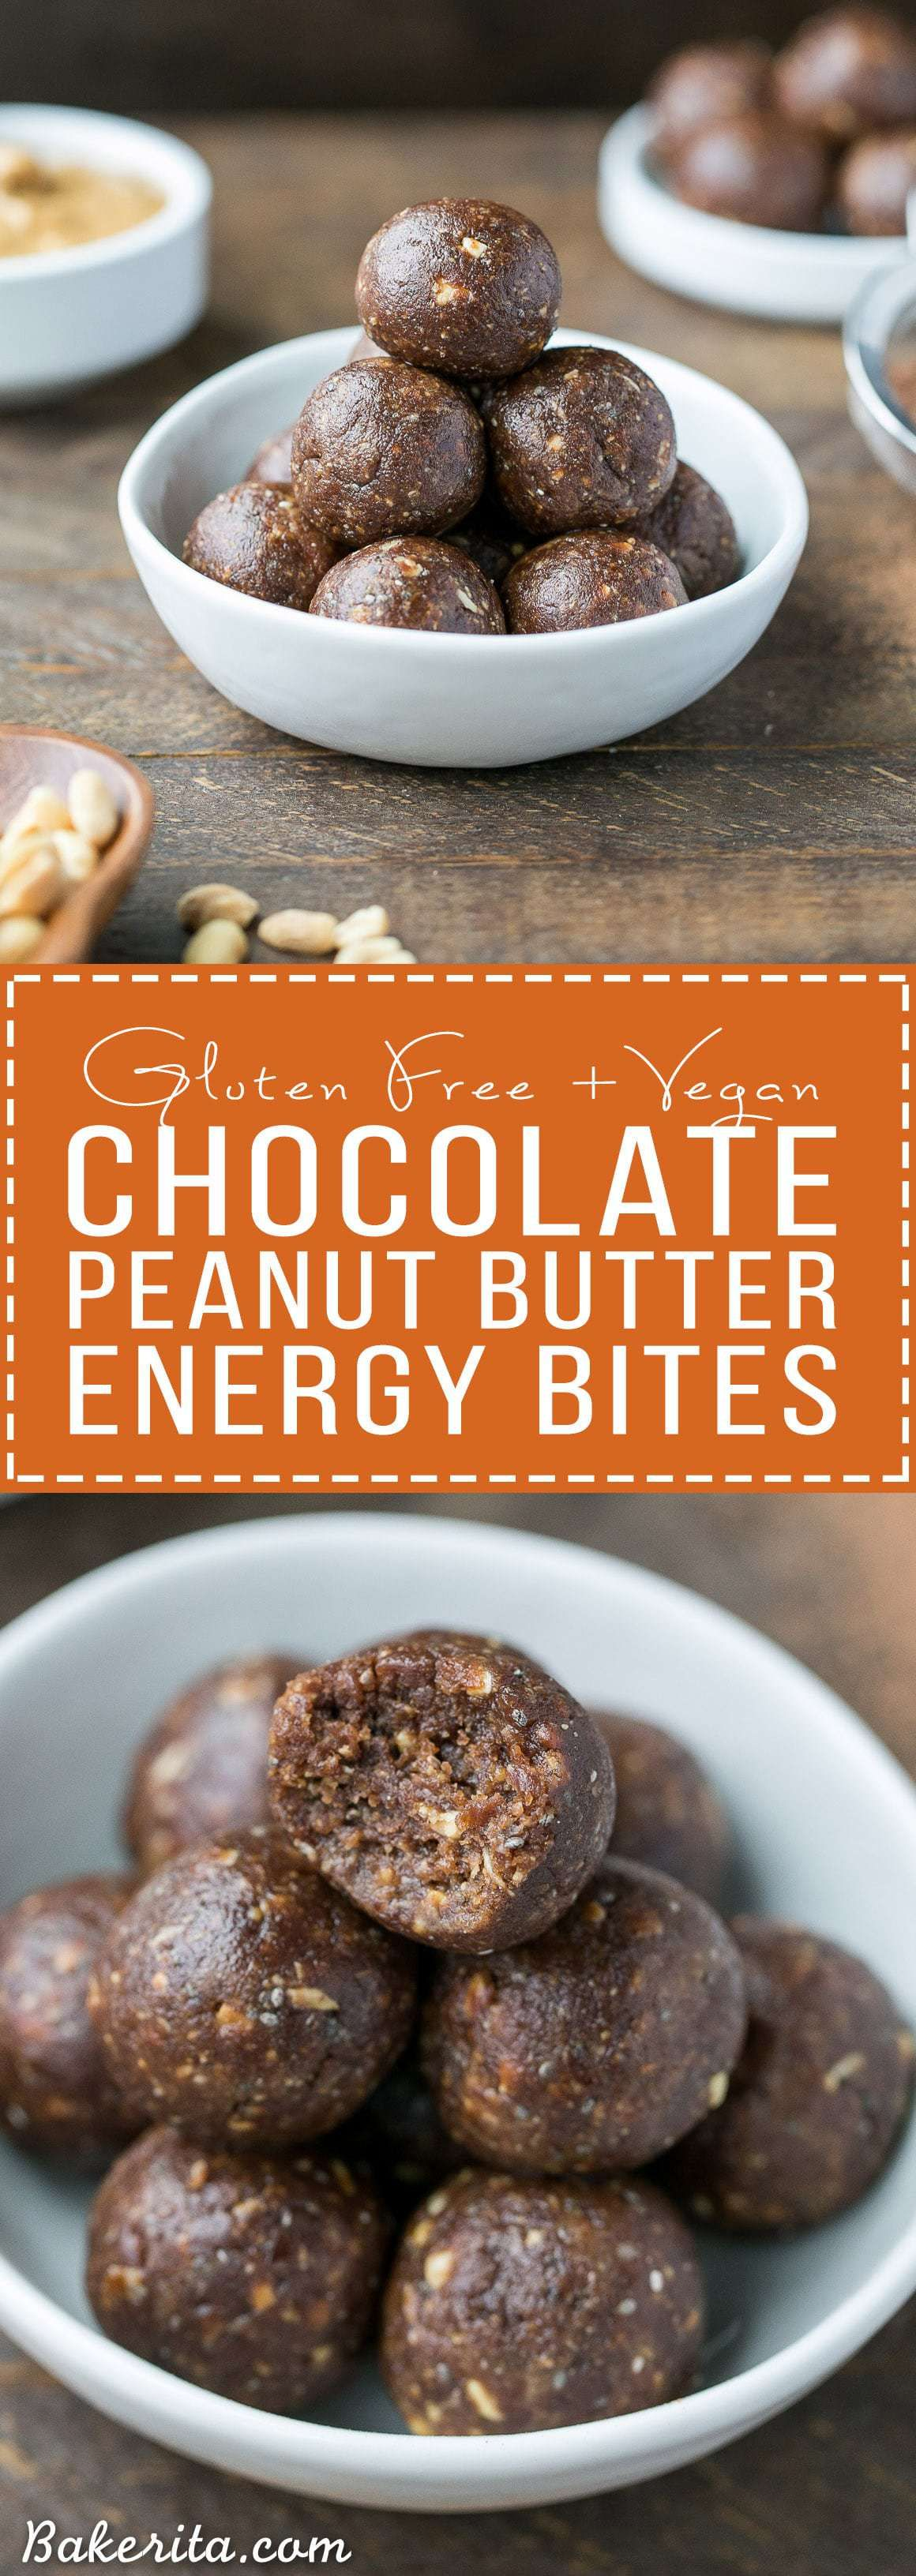 These Chocolate Peanut Butter Energy Bites have just 5 ...